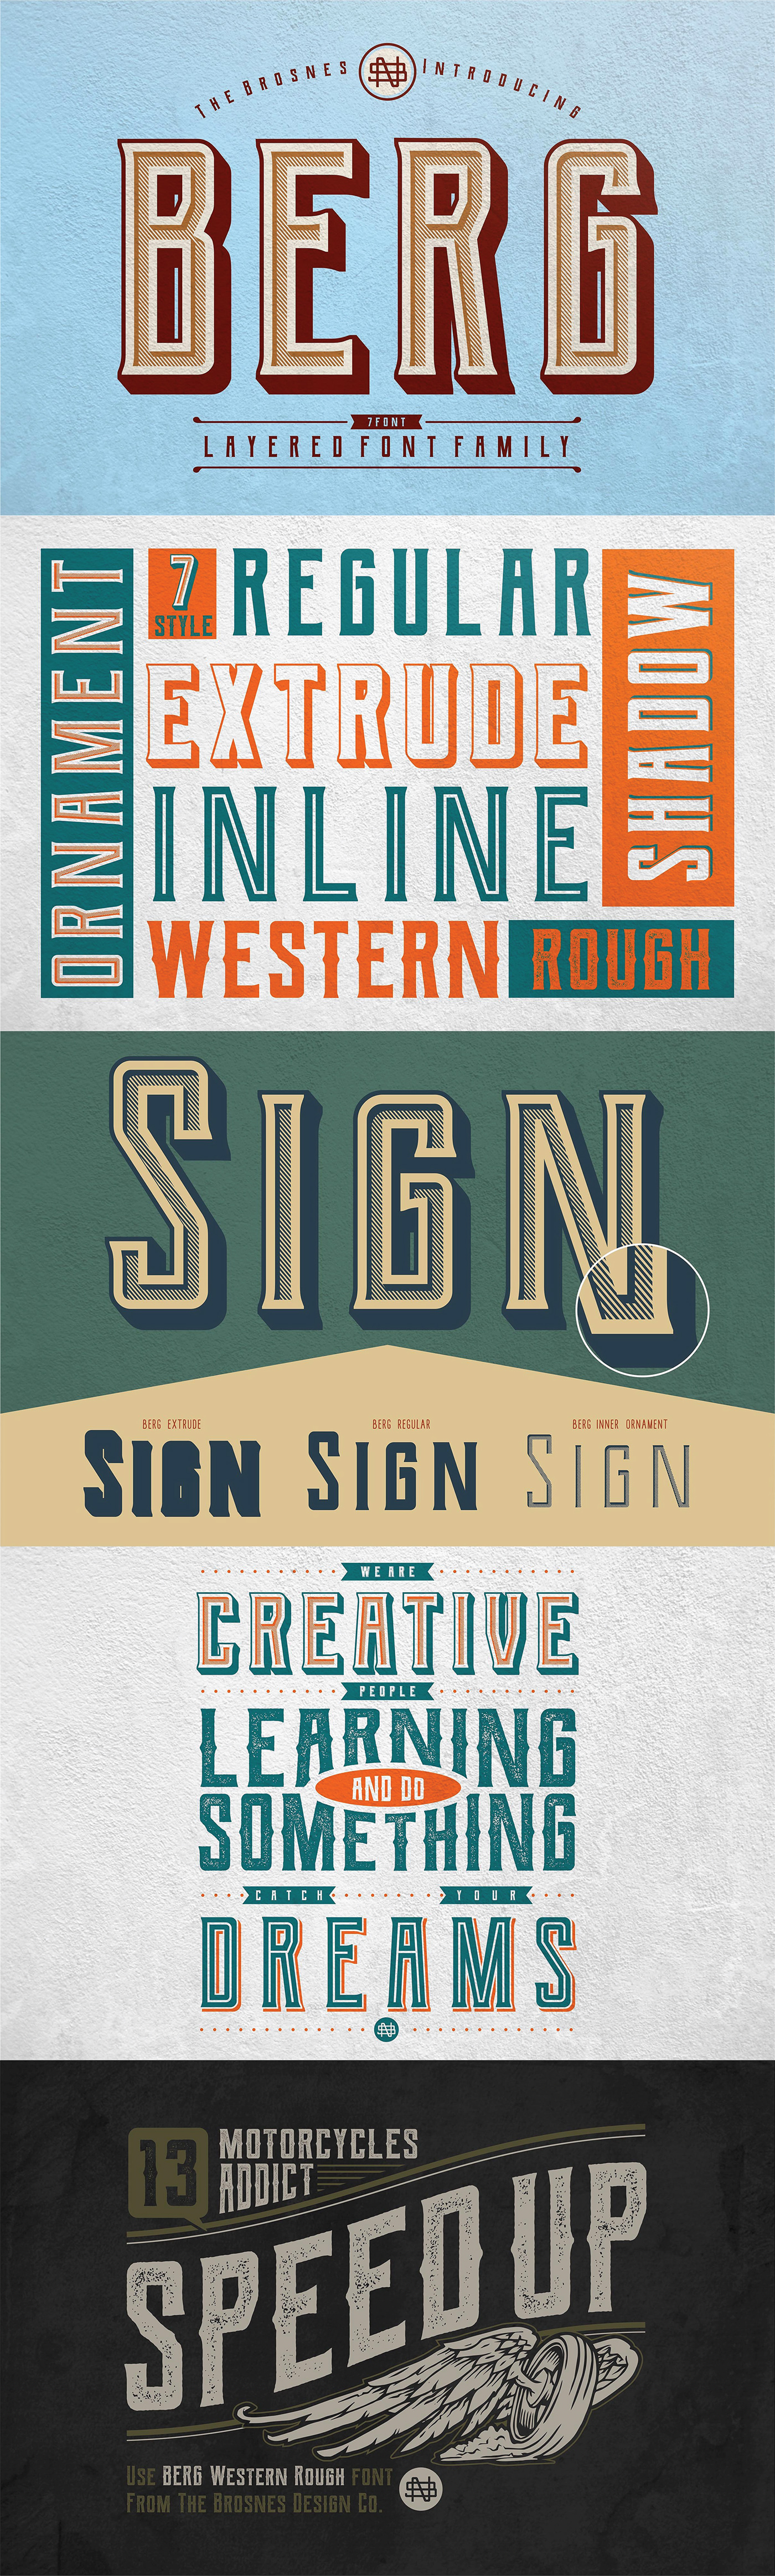 Berg Is A Huge Layered Font Family From Brosnes Inspired By Vintage Sign Painting Posters And Labels Has Strong Shapes That Are Very Attention